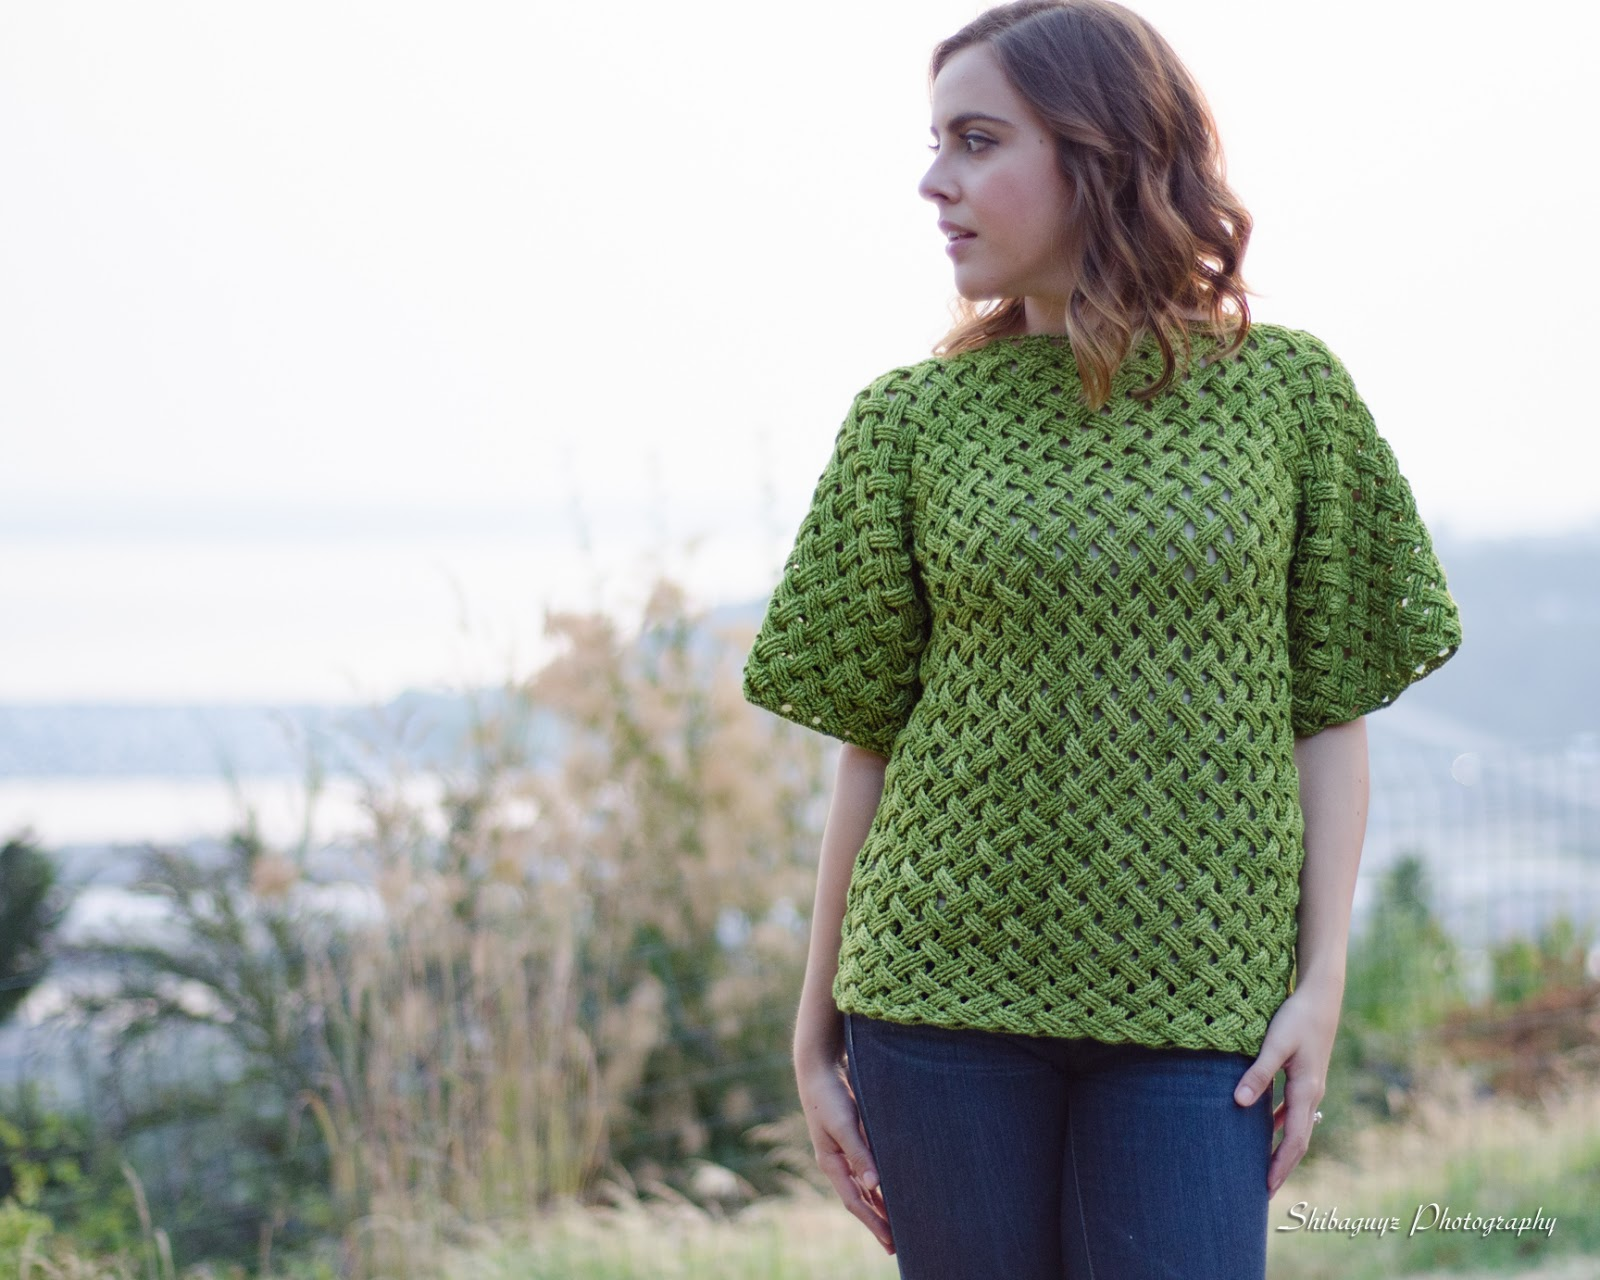 Crochet Blogs : How does Geometry play into these designs? The silhouettes start with ...